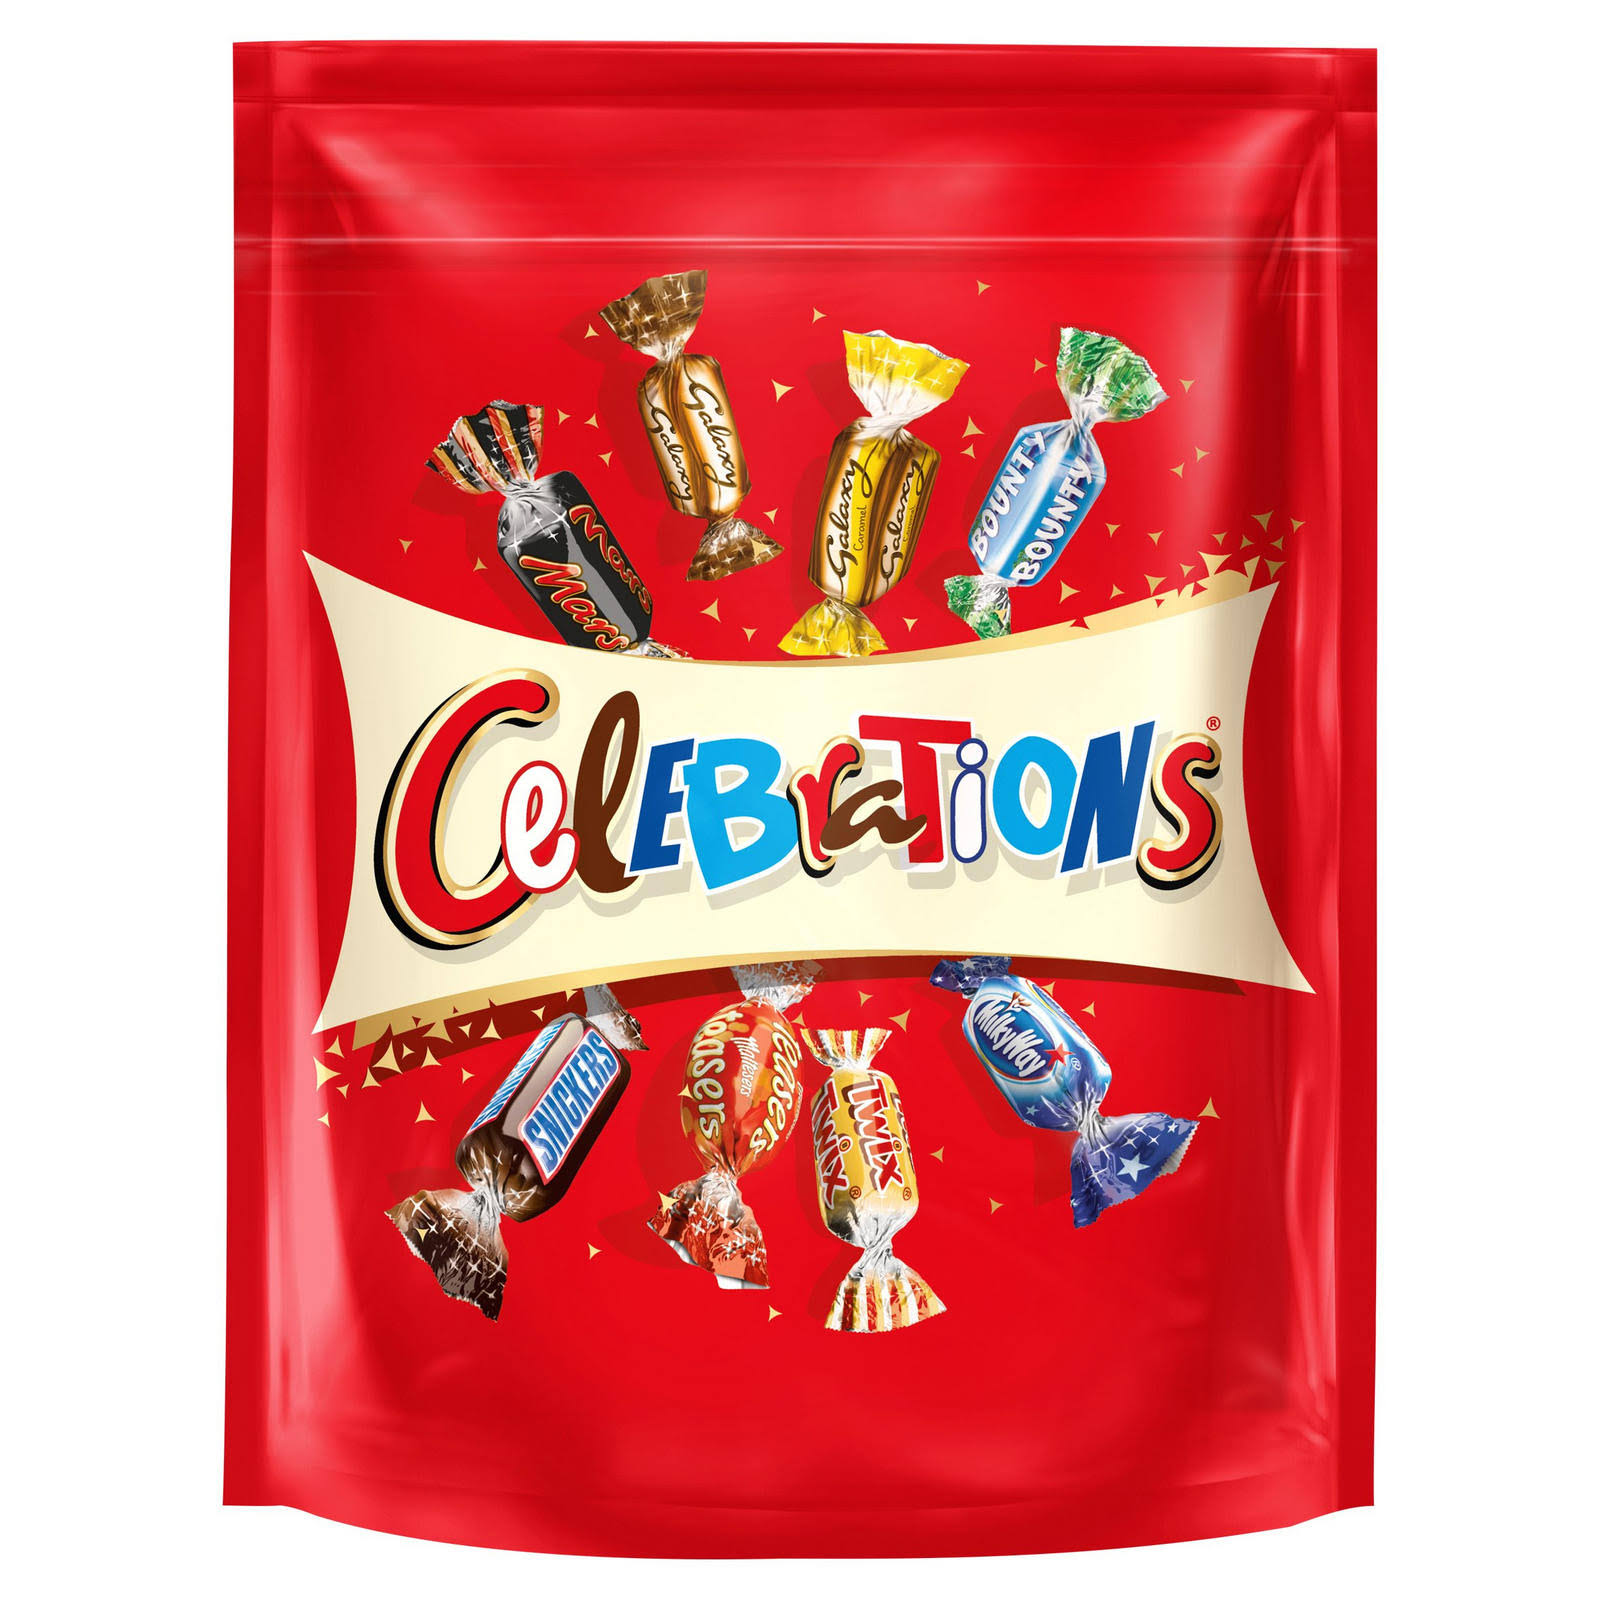 Celebrations Chocolate Sharing Pouch, 400 G